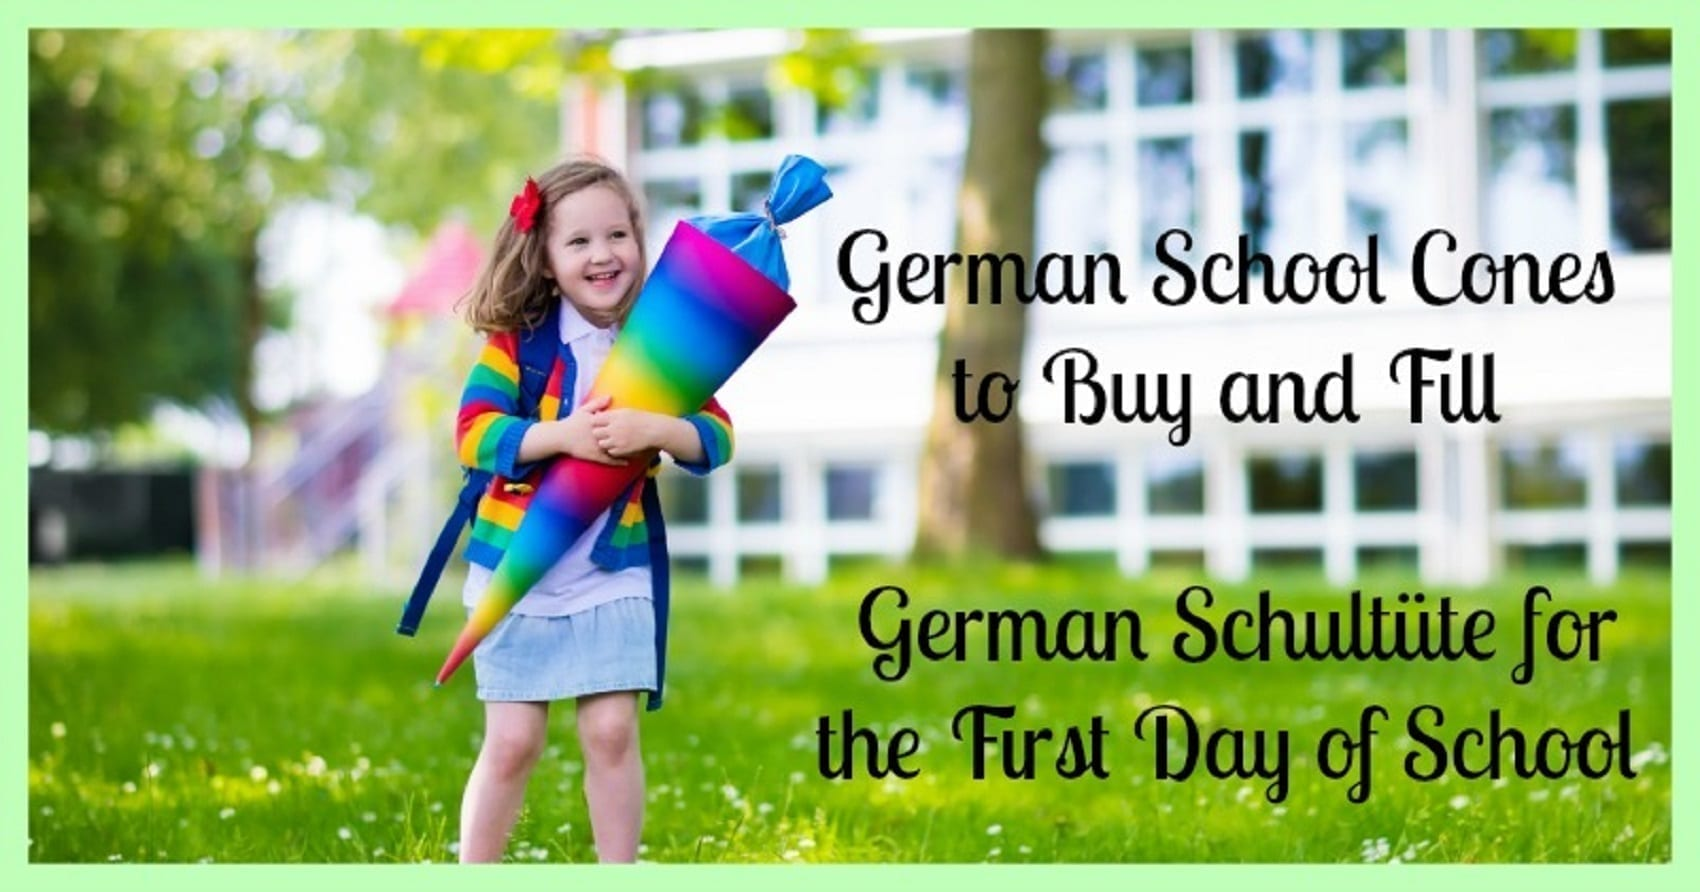 German School Cones- Schultüte for the First Day of School